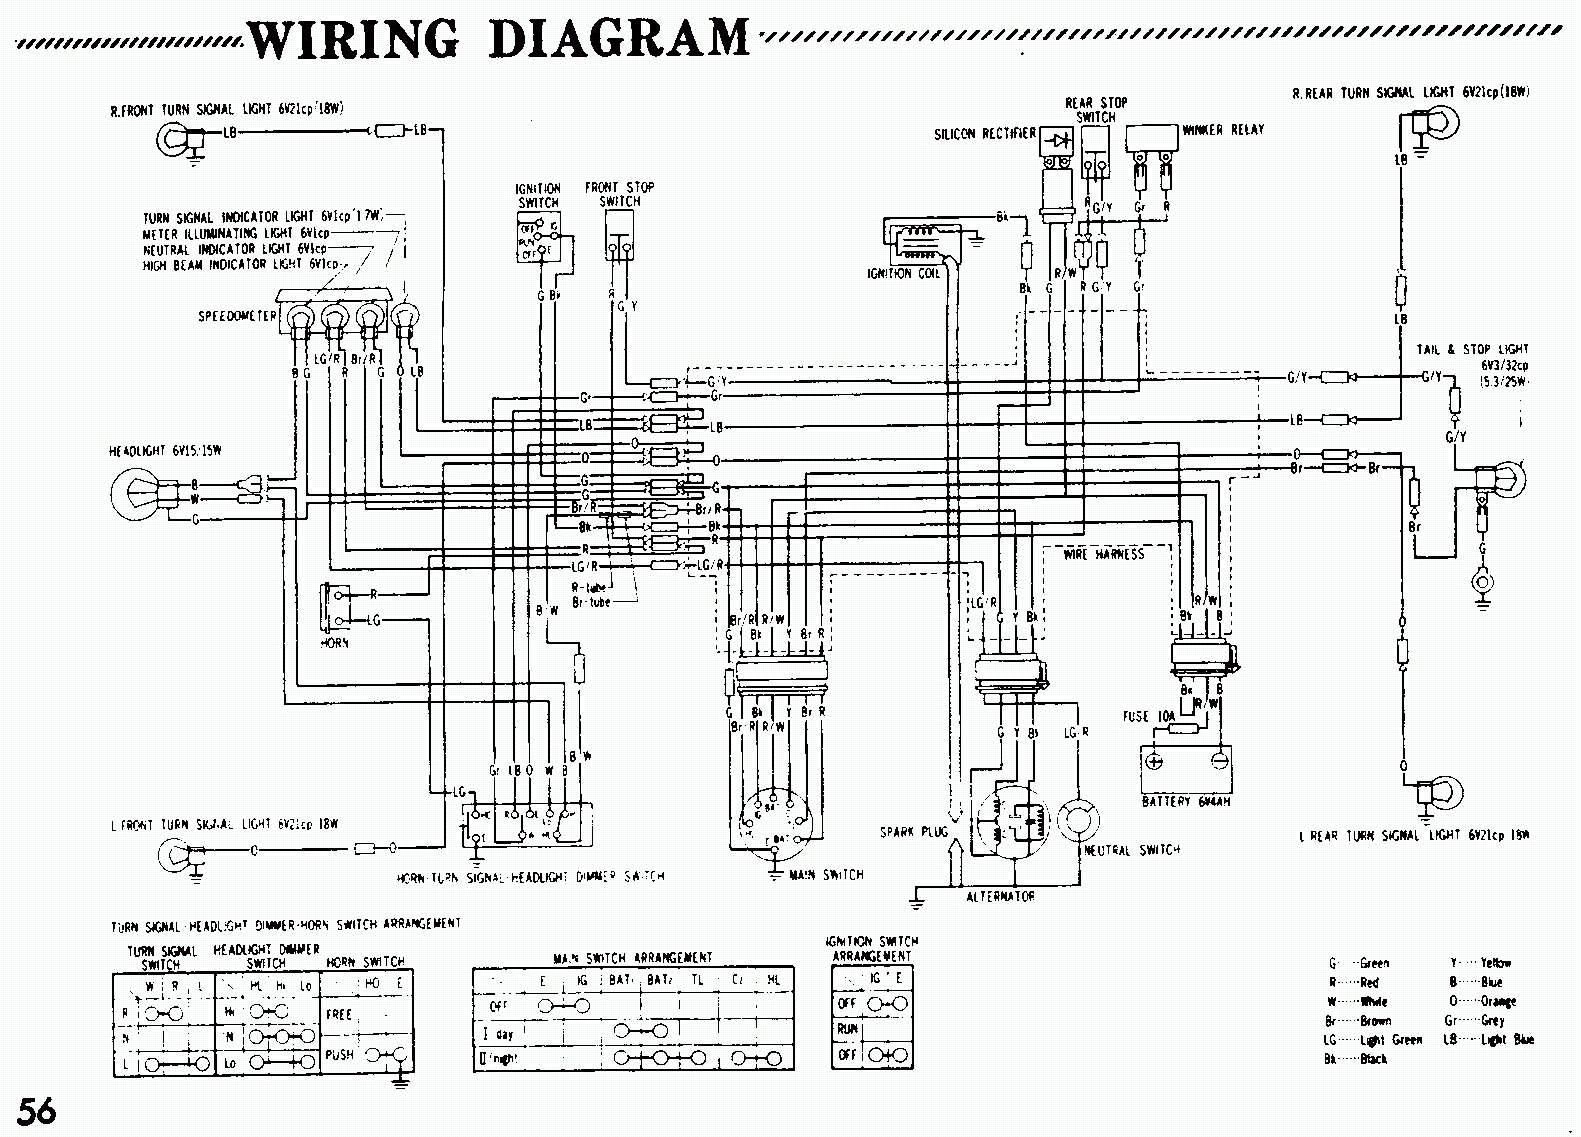 hight resolution of cl72 wiring diagram wiring diagram blogs electronic circuit diagrams cl72 wiring diagram